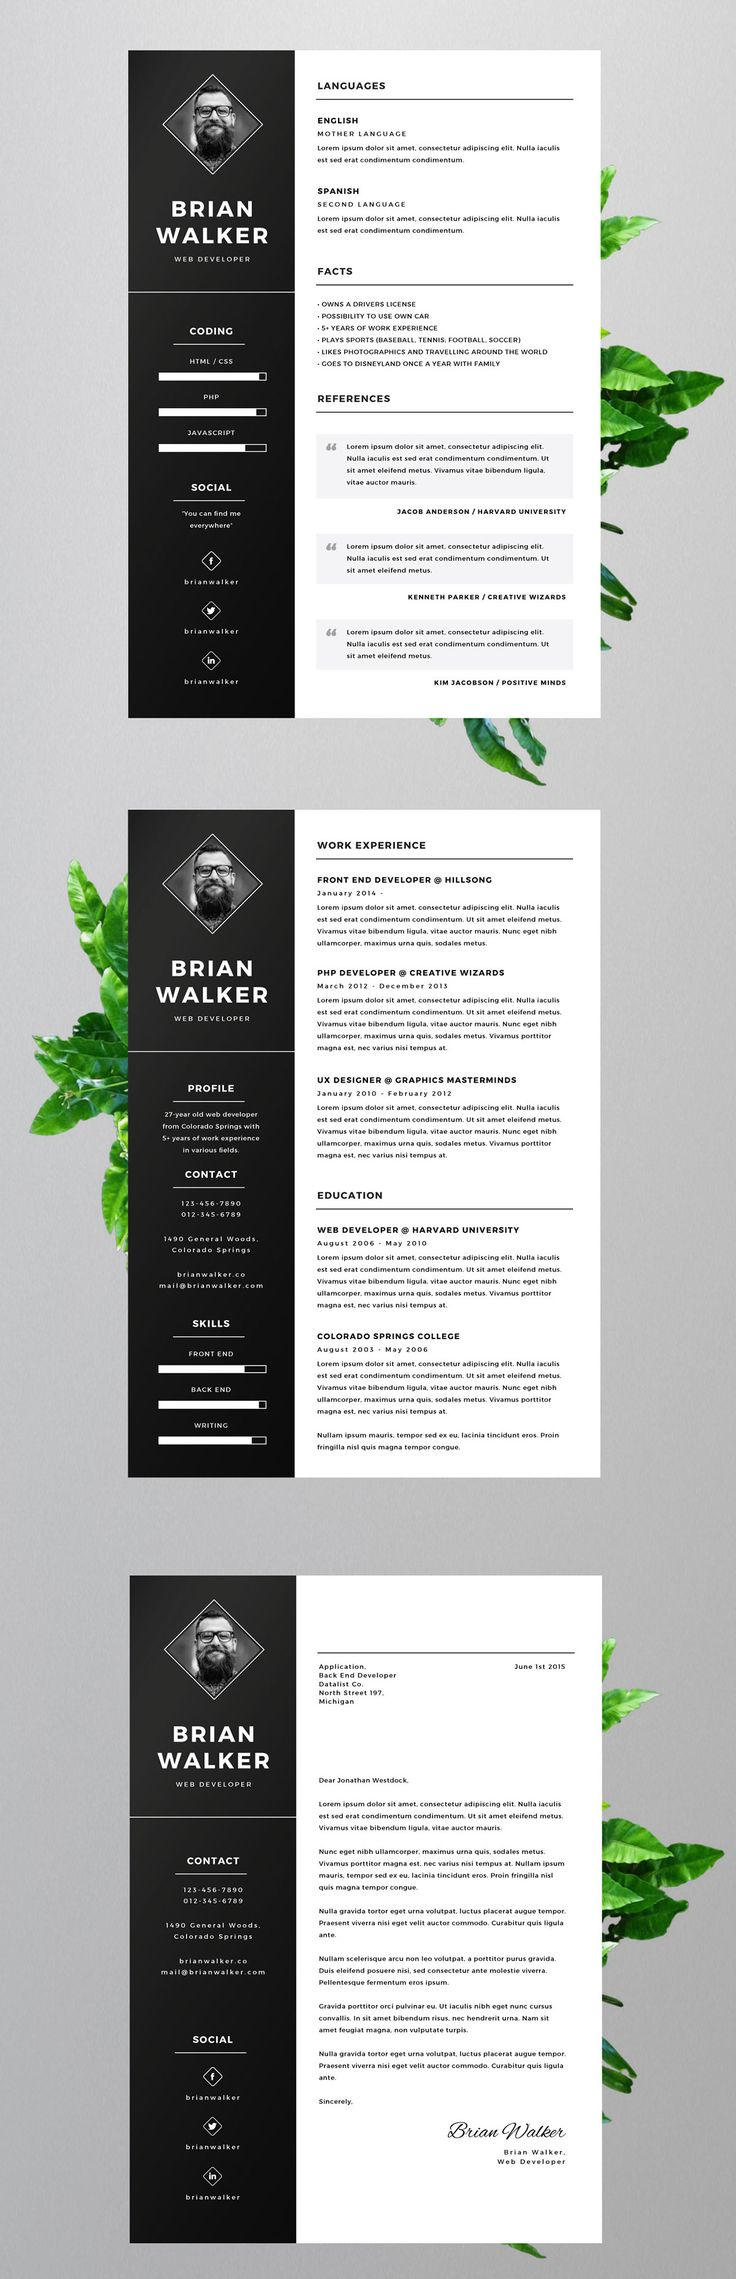 Cv Templates Pdf%0A Free resume template for Microsoft Word  Adobe Photoshop and Adobe  Illustrator  Free for personal